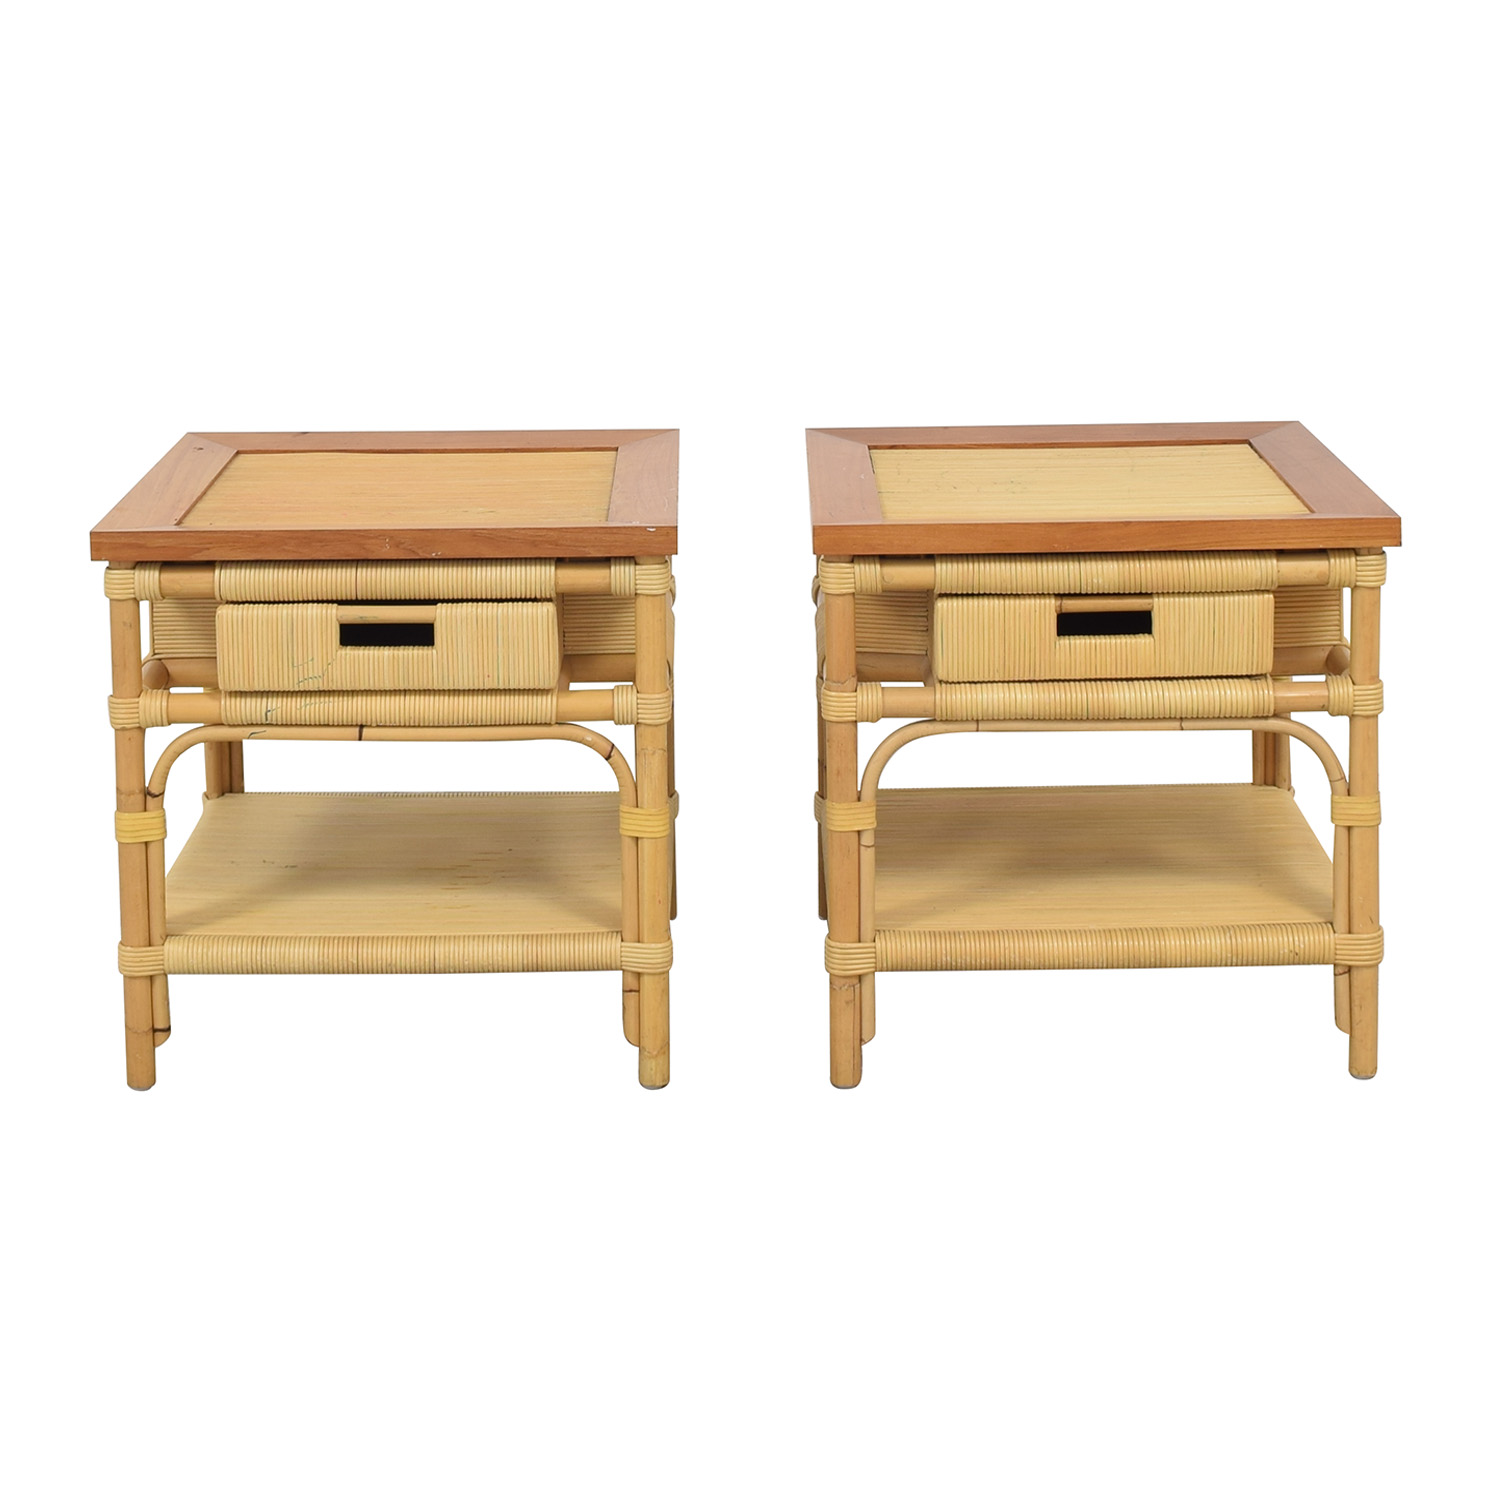 Donghia Donghia Modern Bamboo and Reed Tables pa